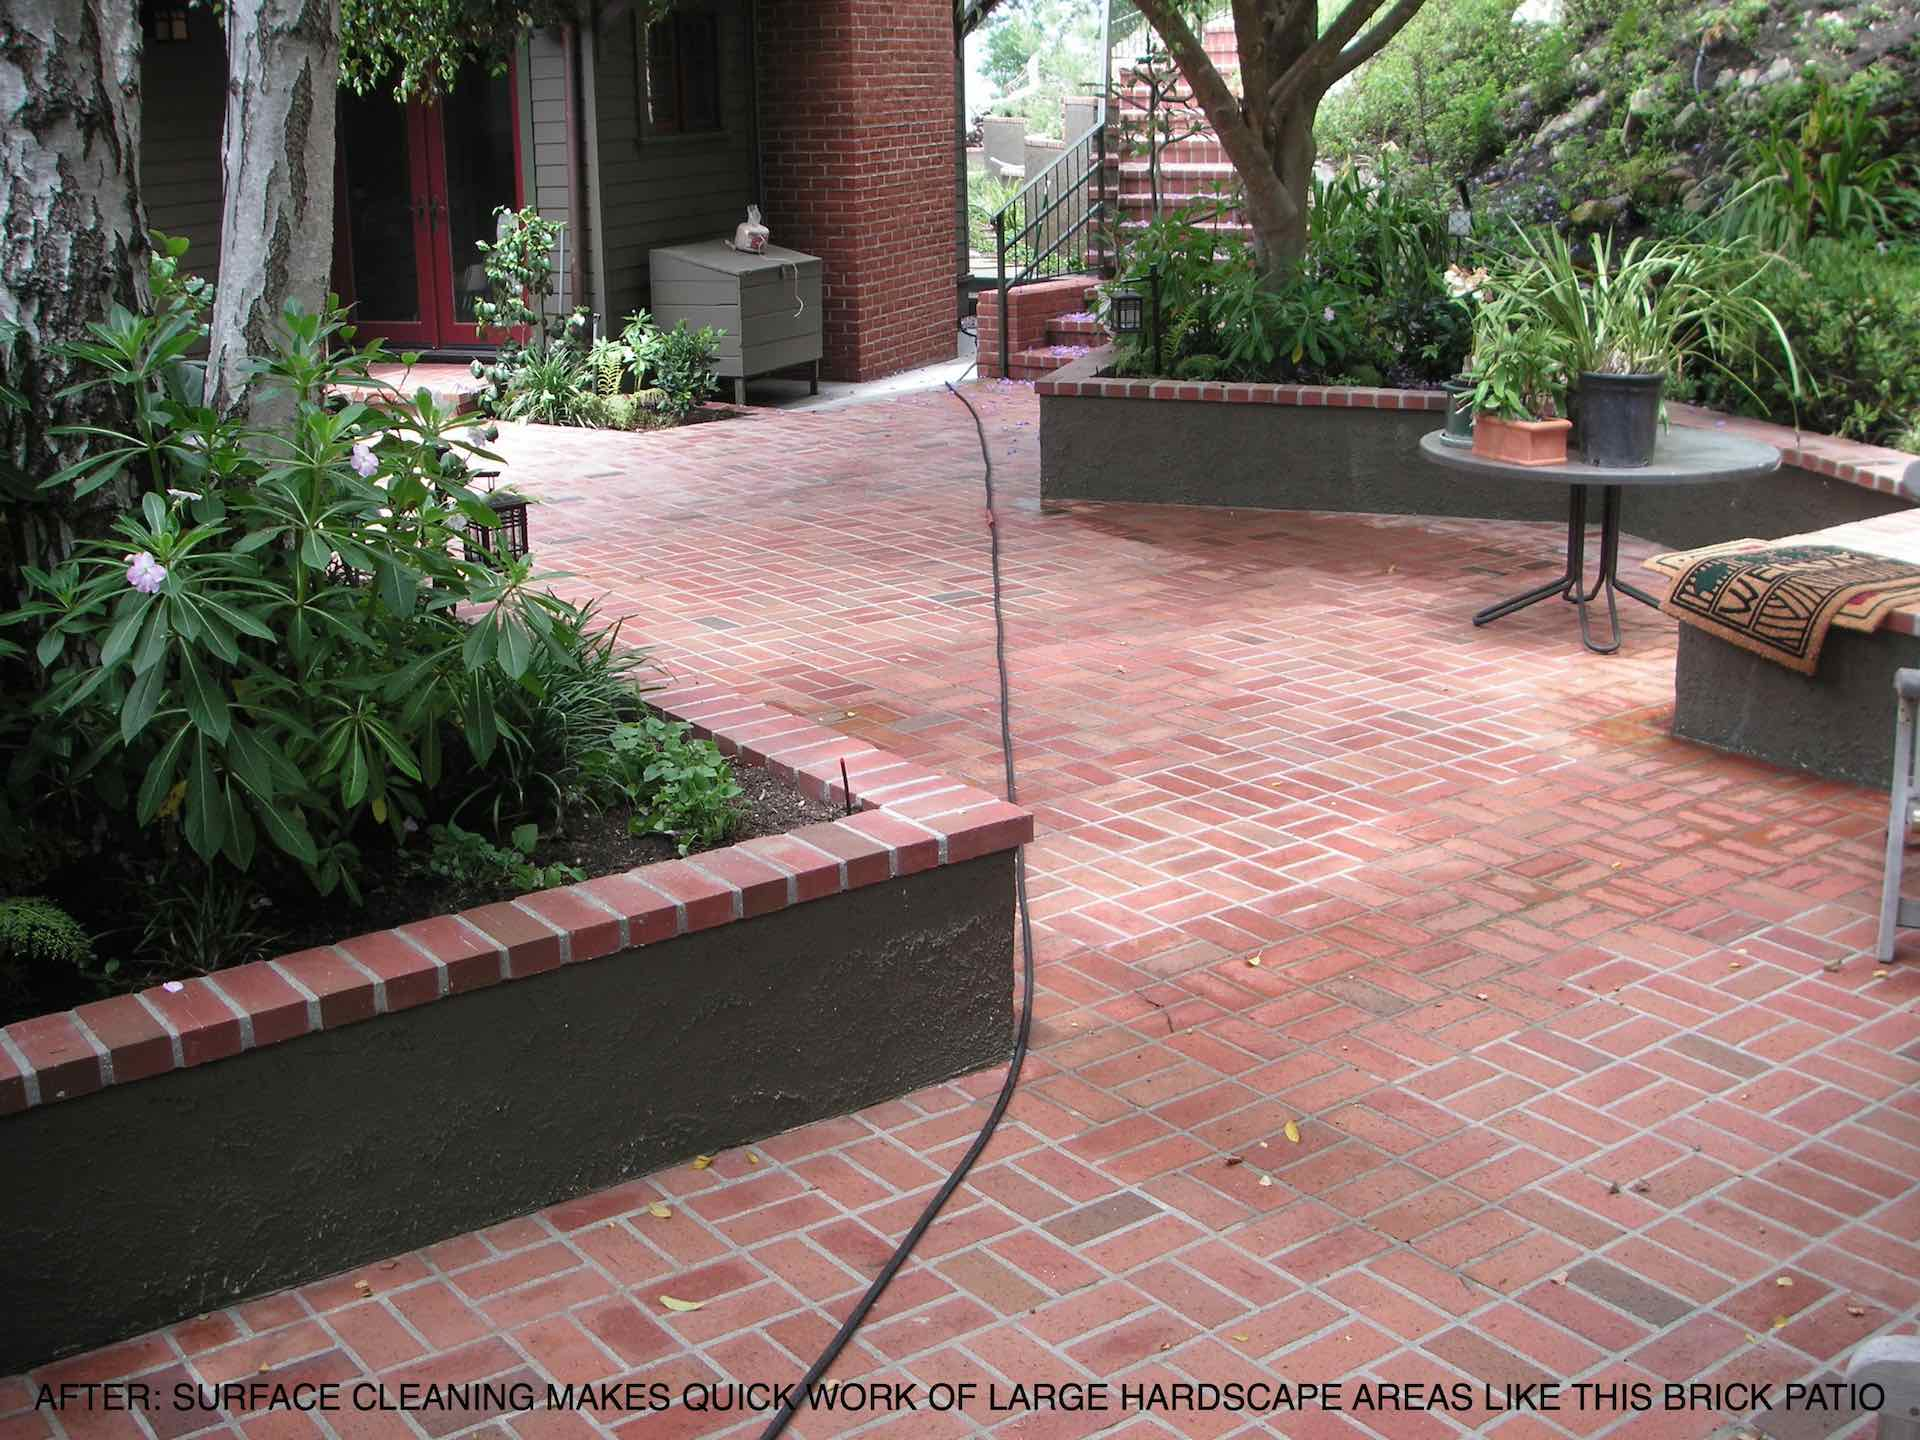 Professional Exterior Surface Cleaning Service, High